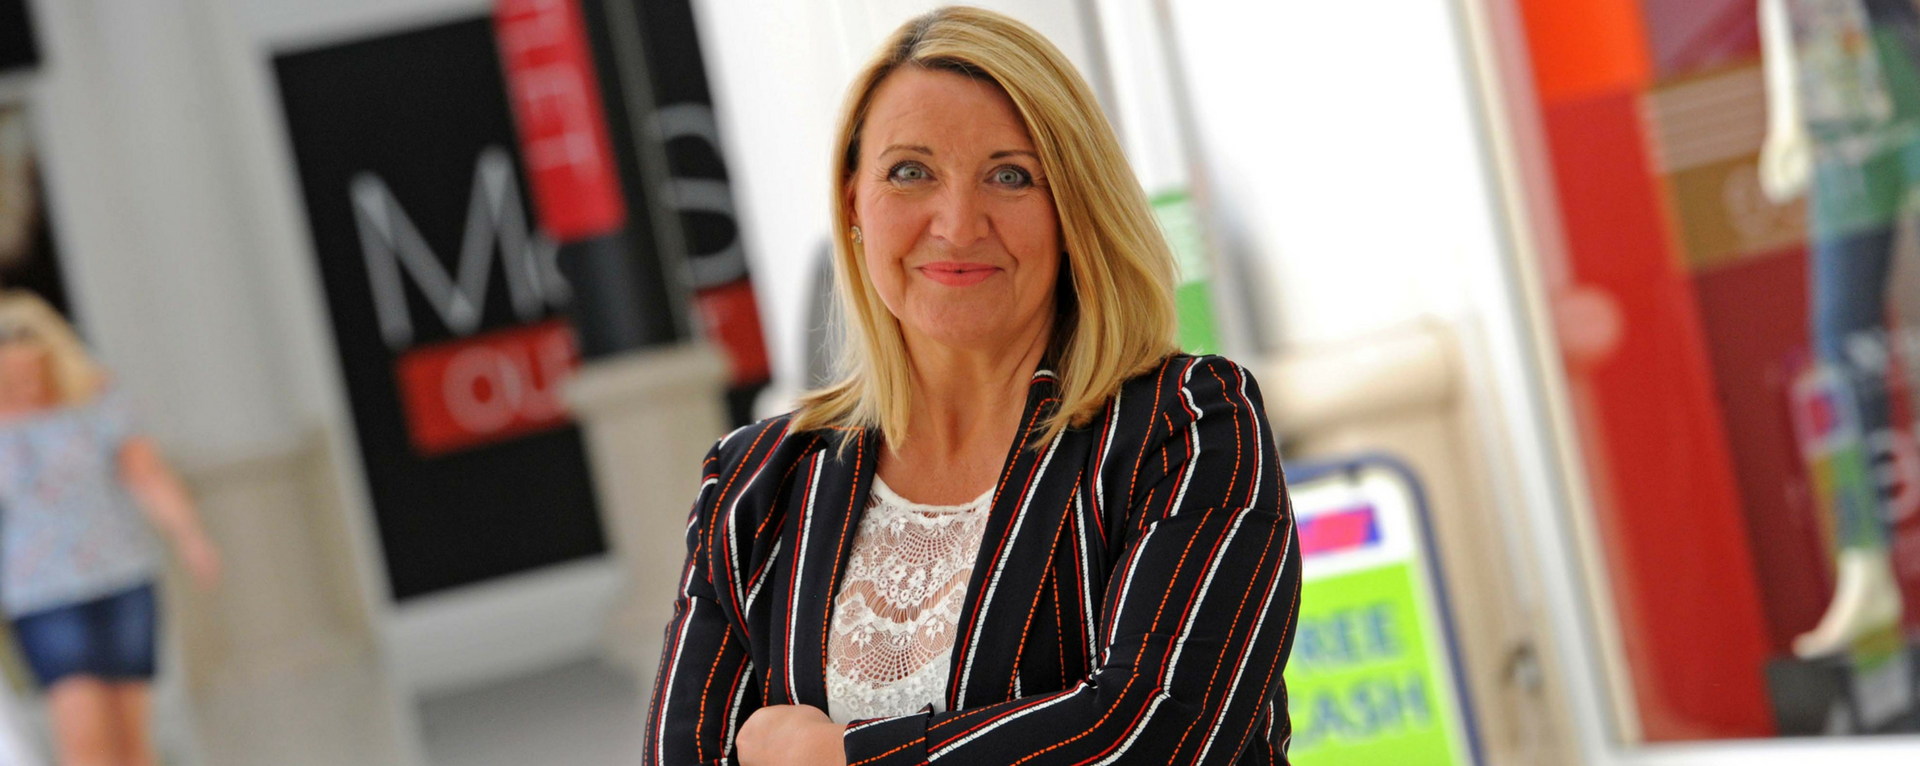 Sugar PR hired for shopping centre PR brief to drive footfall